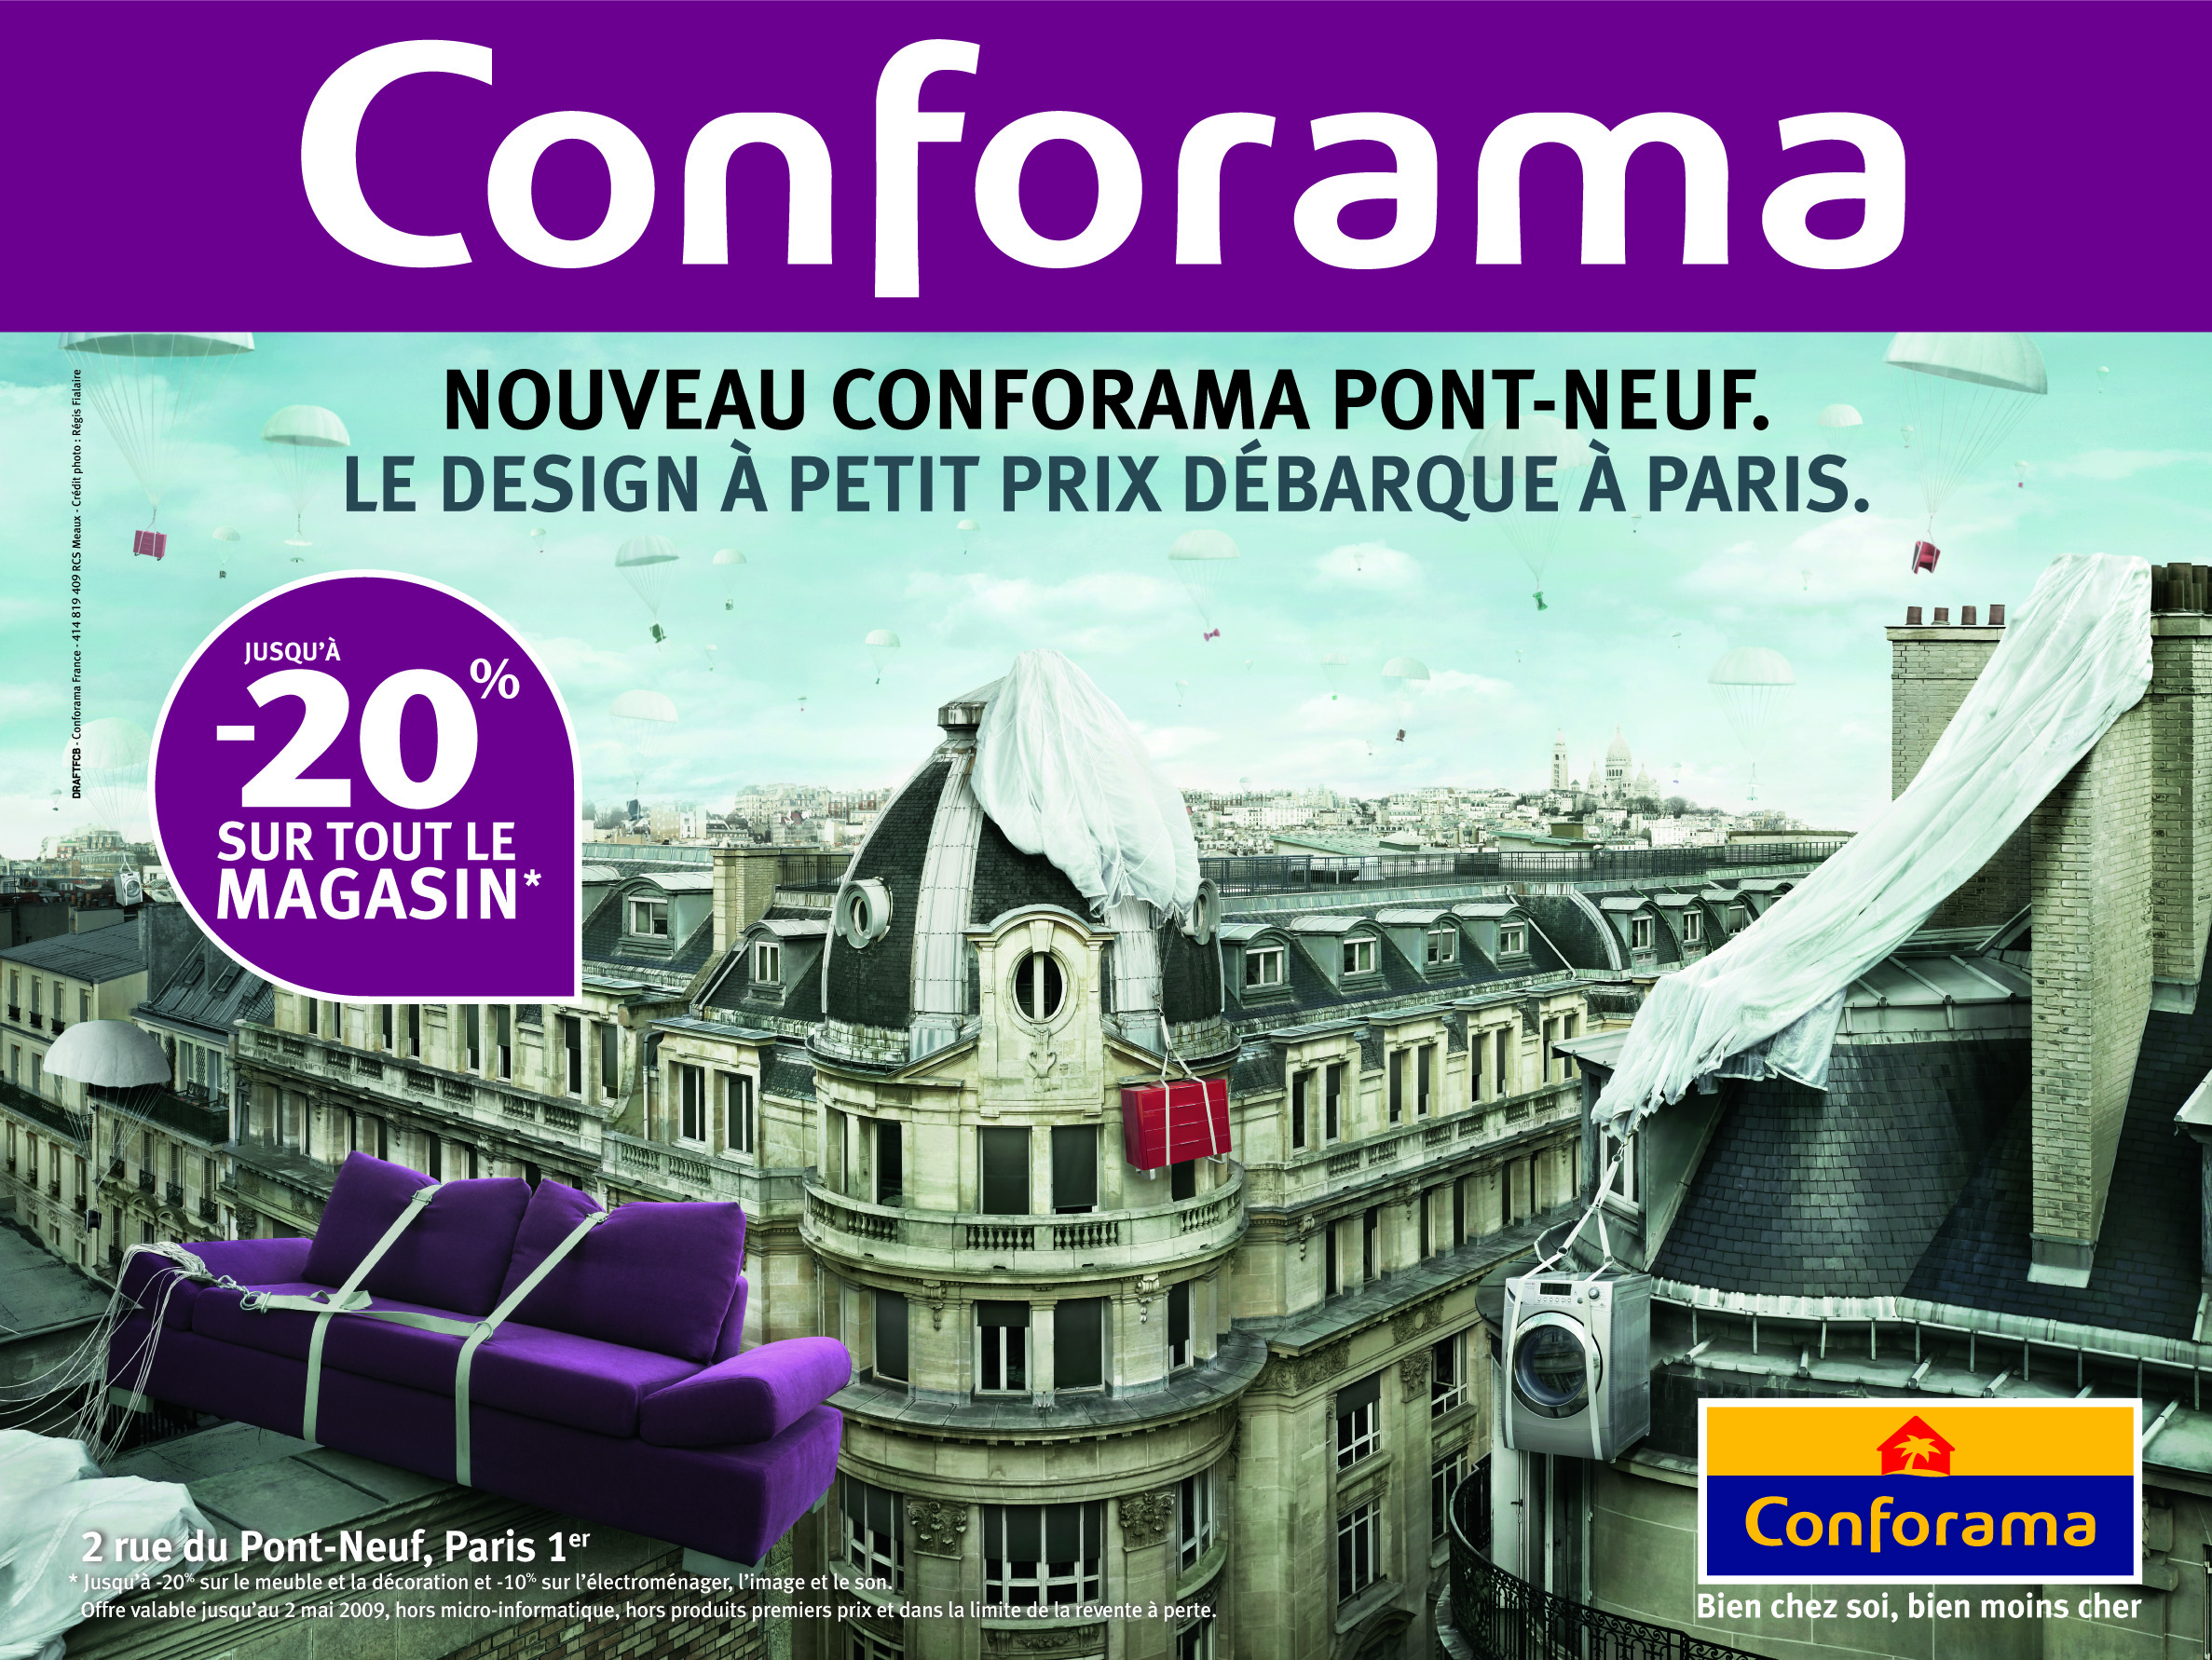 Conforama Rouen Catalogue Conforama Pont Neuf Horaires Best Conforama Salon En D